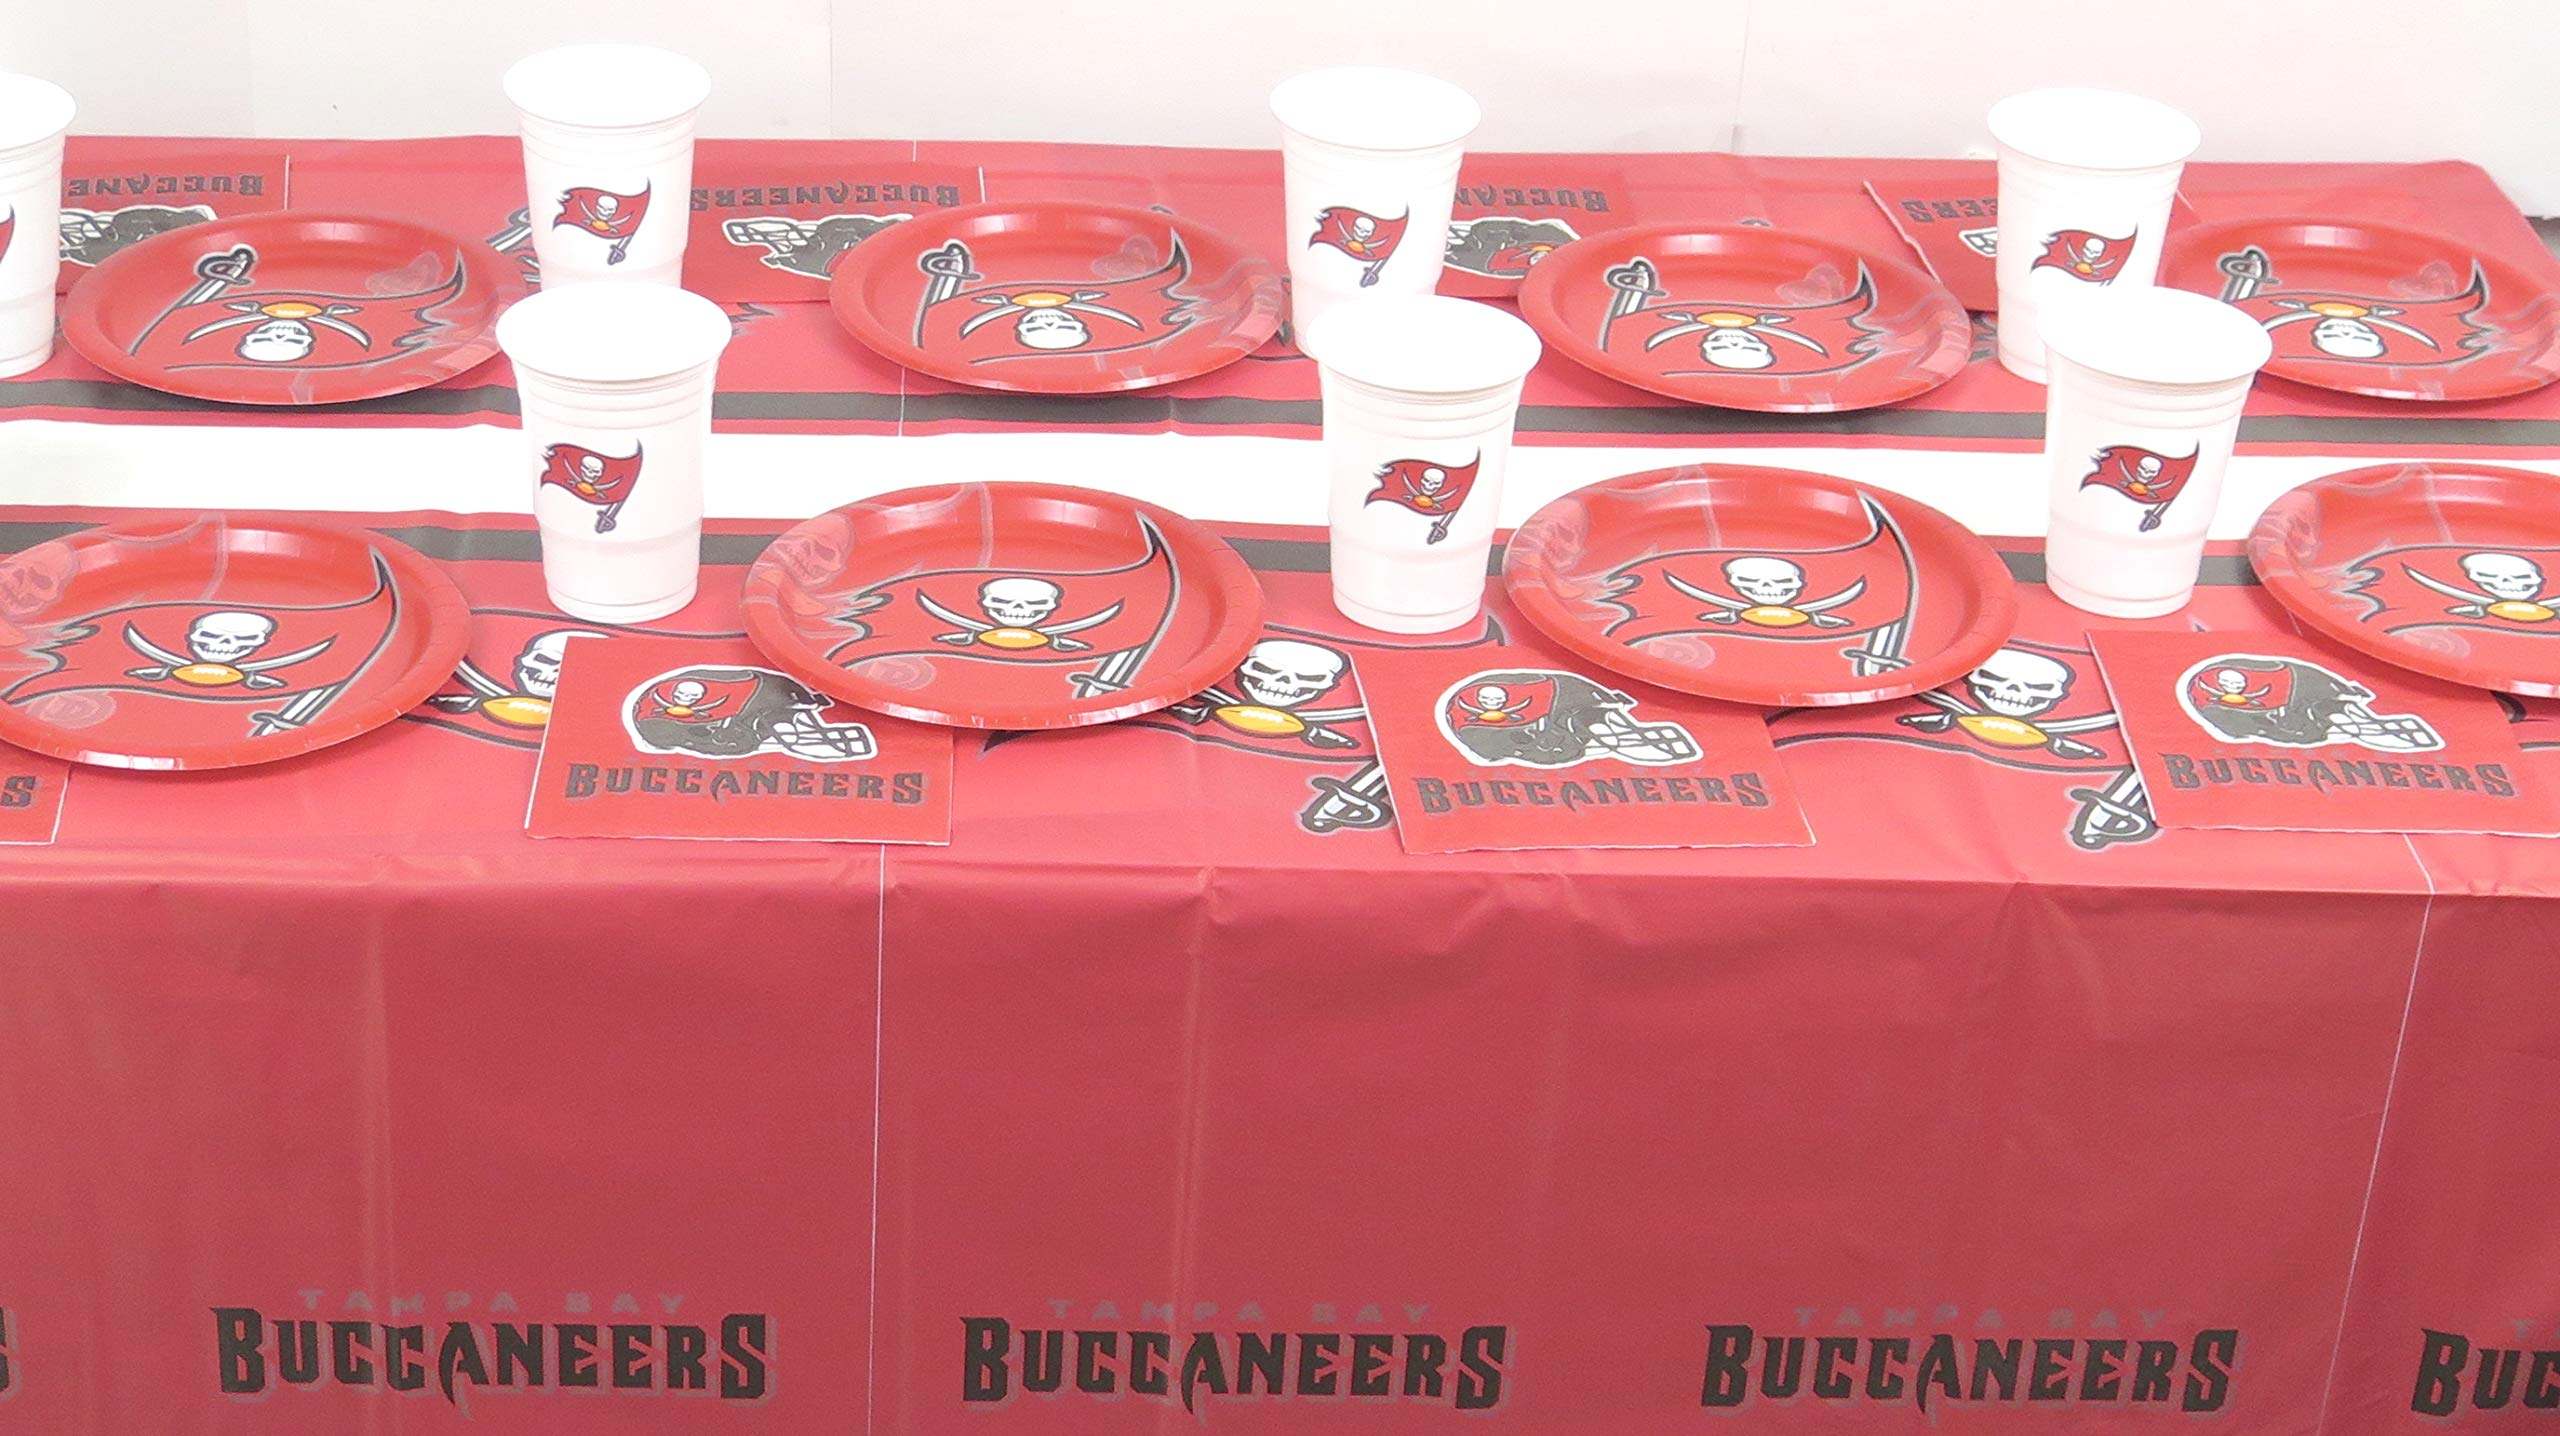 Tampa Bay Buccaneers Game Day Football Party Set, Includes Plates, Napkins, Jumbo Cups and a Tablecloth 49 Pieces Set.